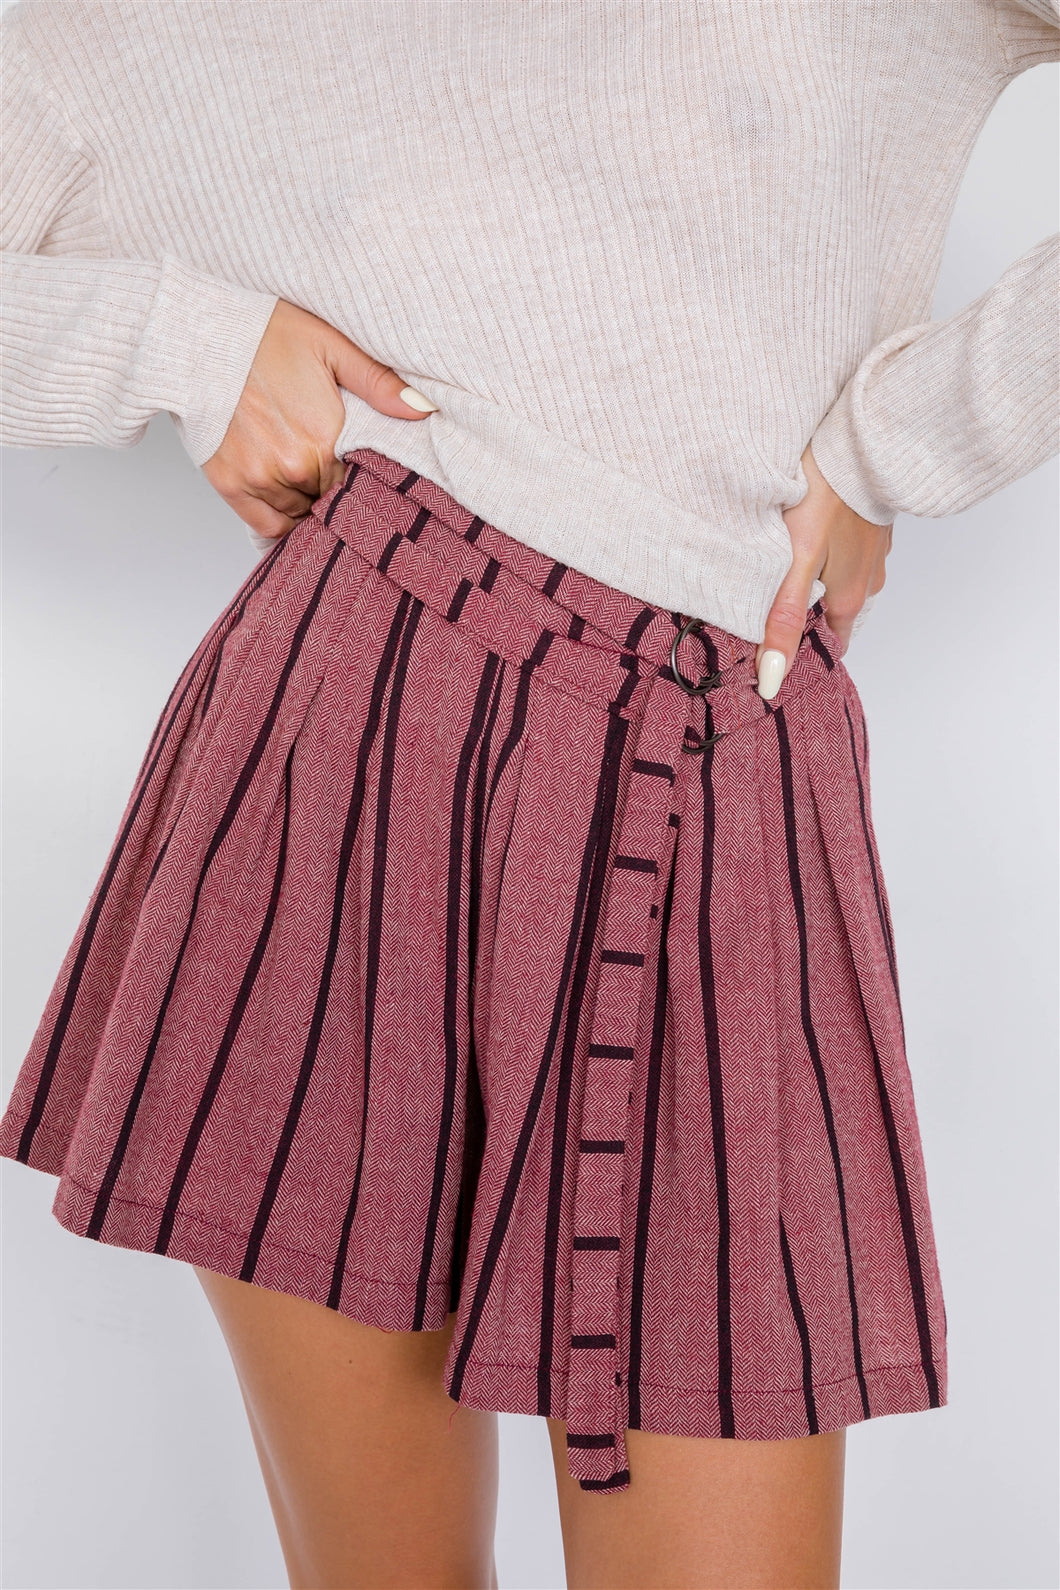 Mauve Plum Purple Stripes Vintage High-waist Adjustable Waist Tie Shorts